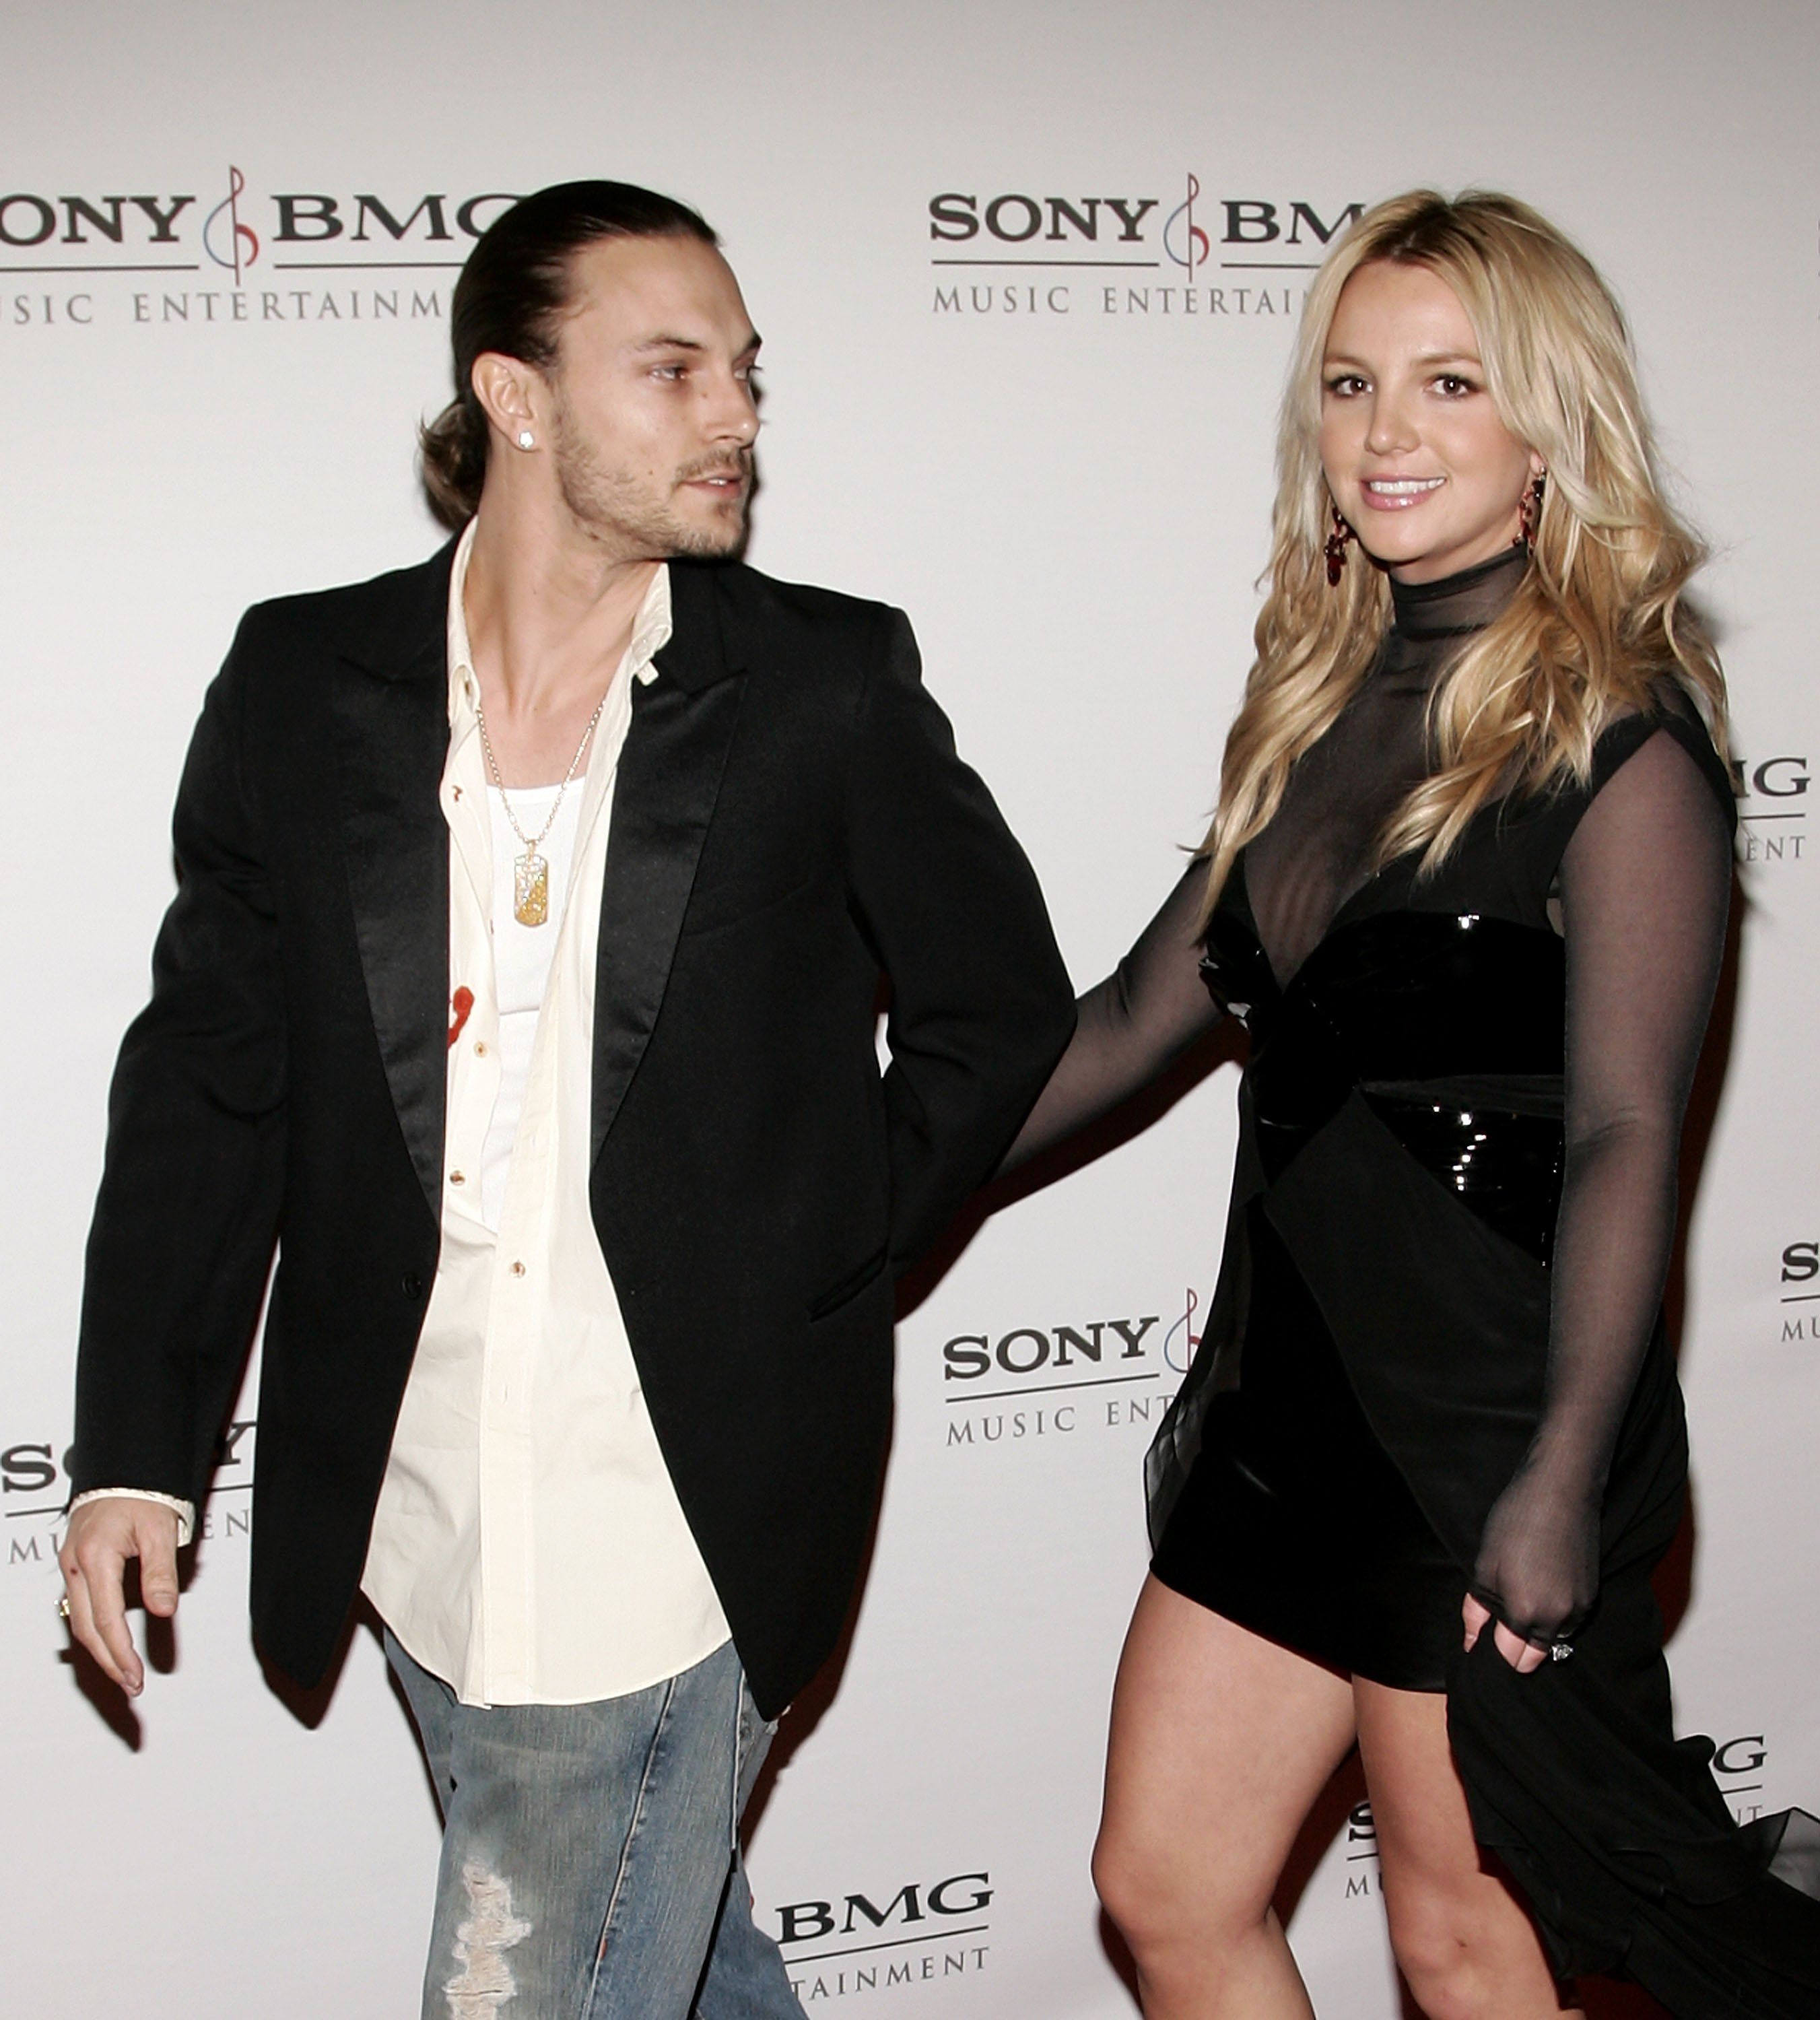 Britney Spears and husband Kevin Federline at the SONY BMG Grammy Party in 2006 in Hollywood | Source: Getty Images